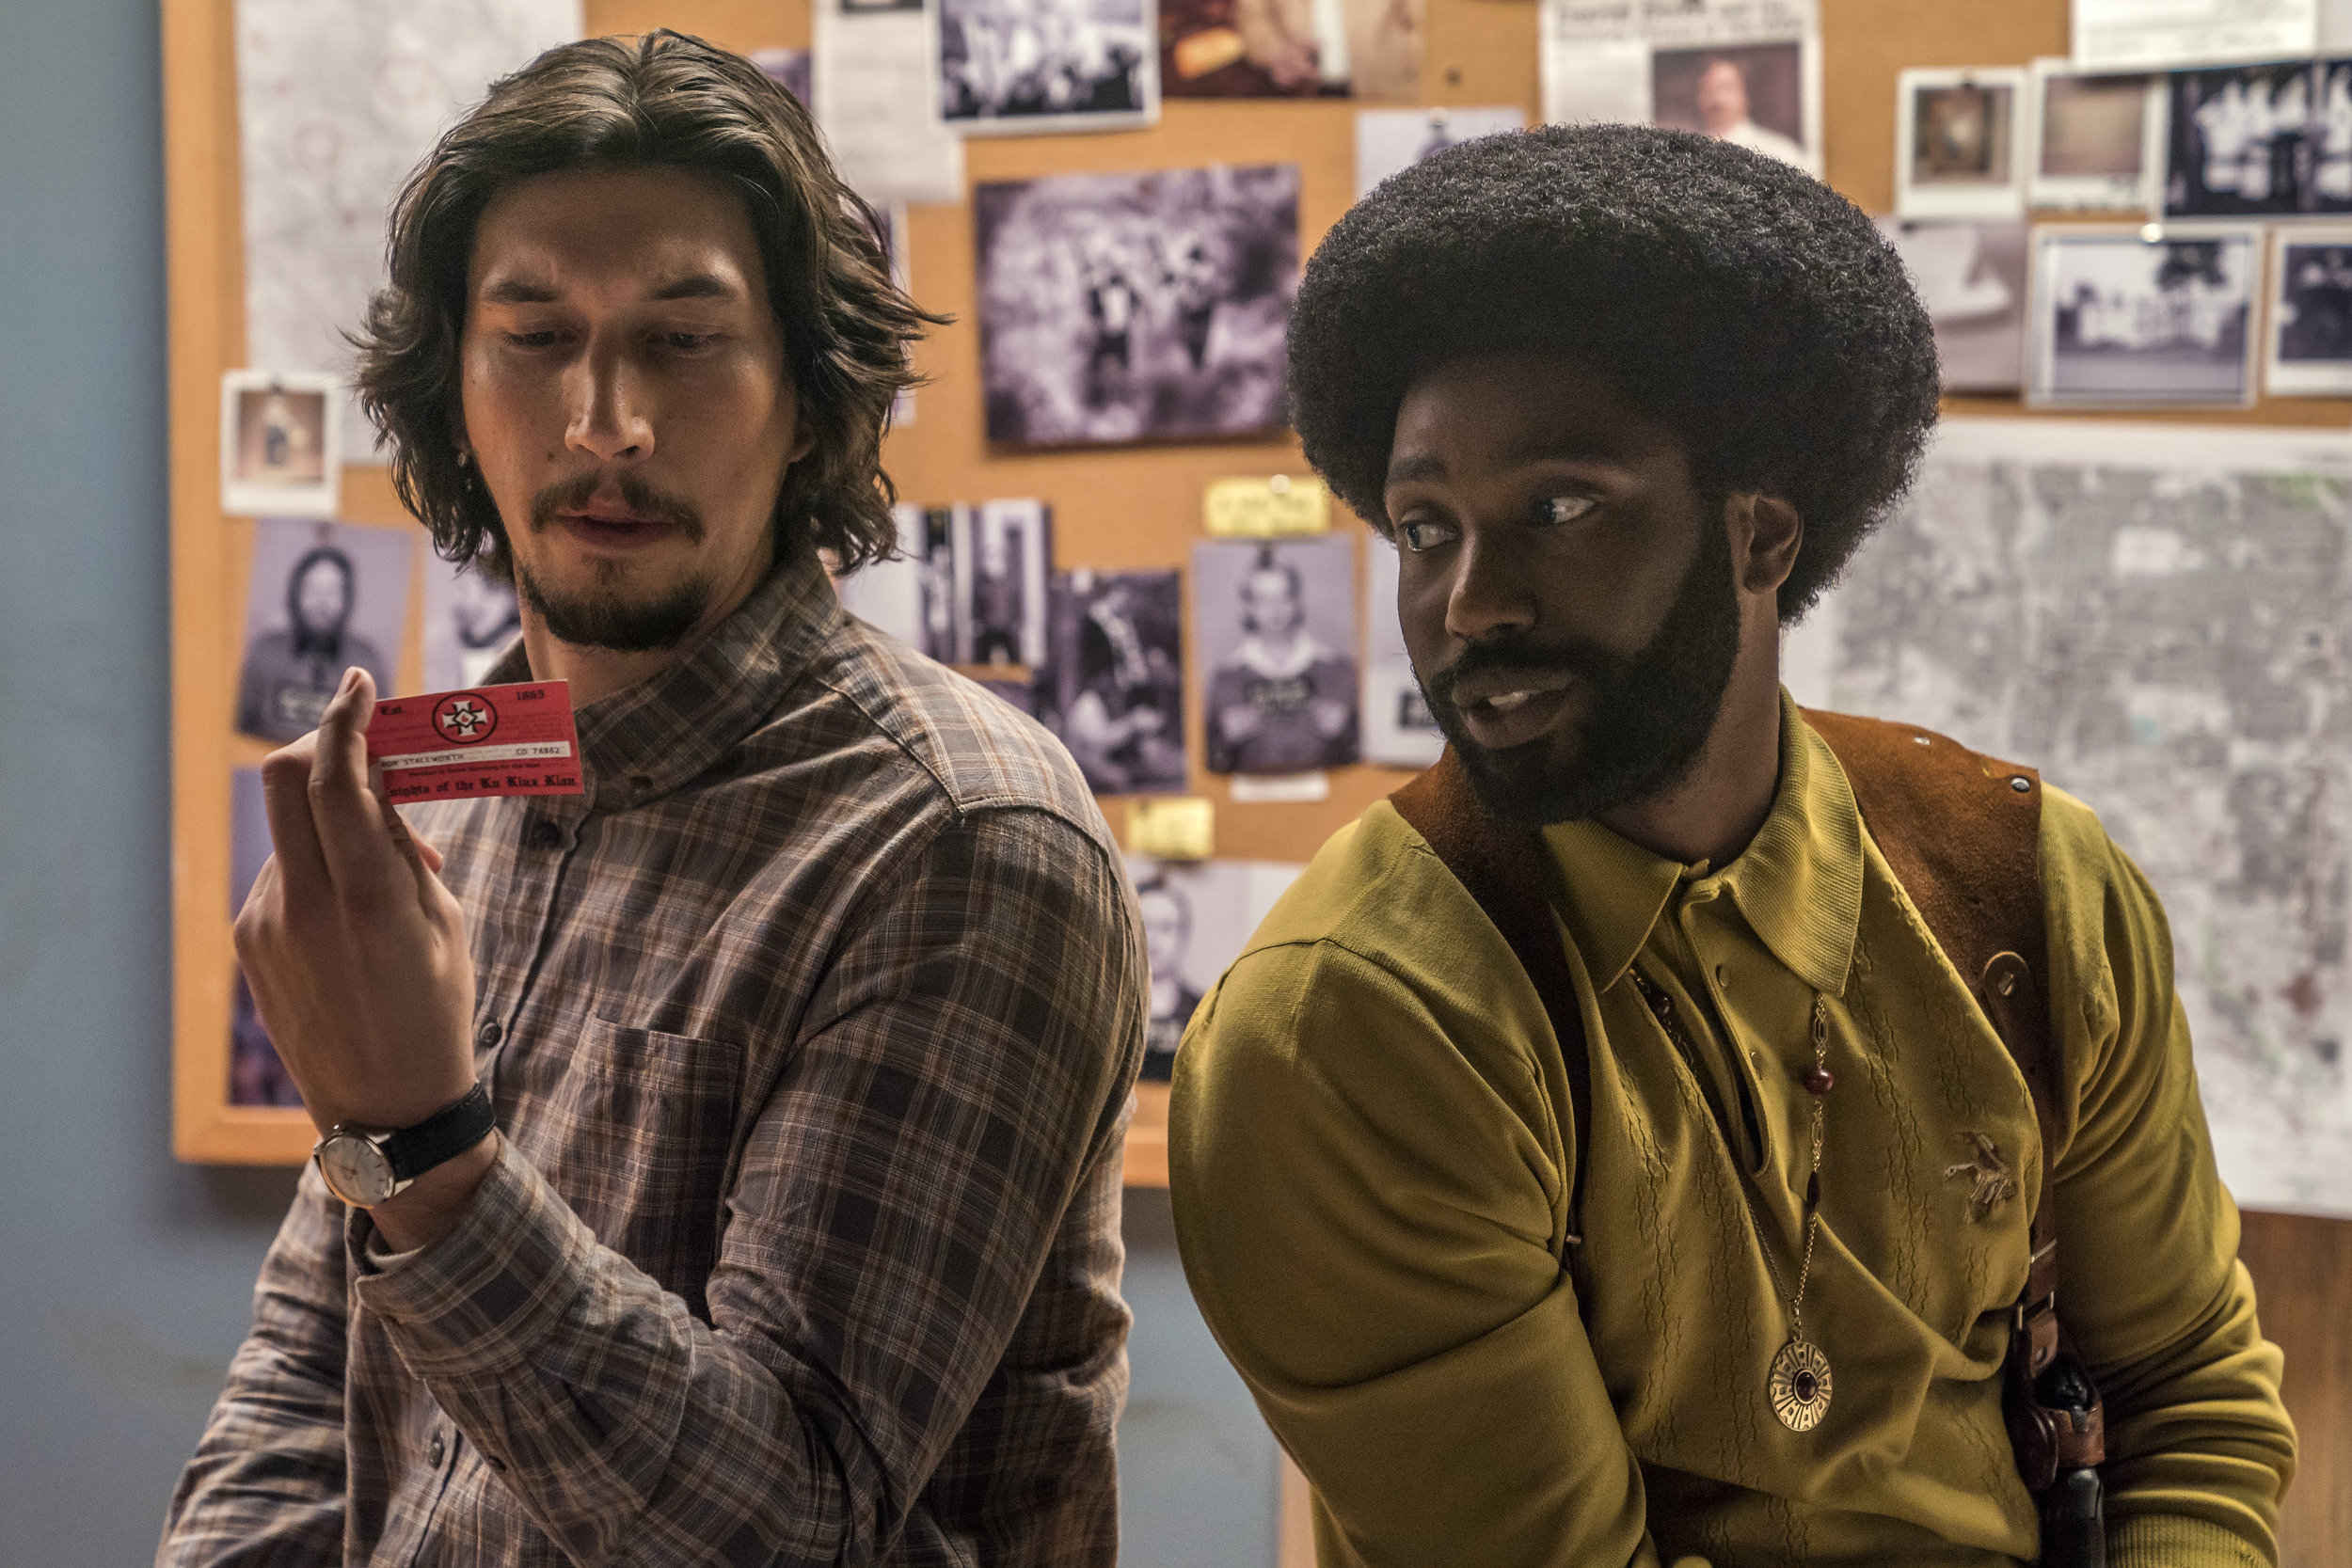 "Colorado Springs detectives Flip Zimmerman (Adam Driver, left) and Ron Stallworth (John David Washington, right) work to infiltrate the Ku Klux Klan, in Spike Lee's true-life drama ""BlacKkKlansman."" (Photo courtesy Focus Features)"